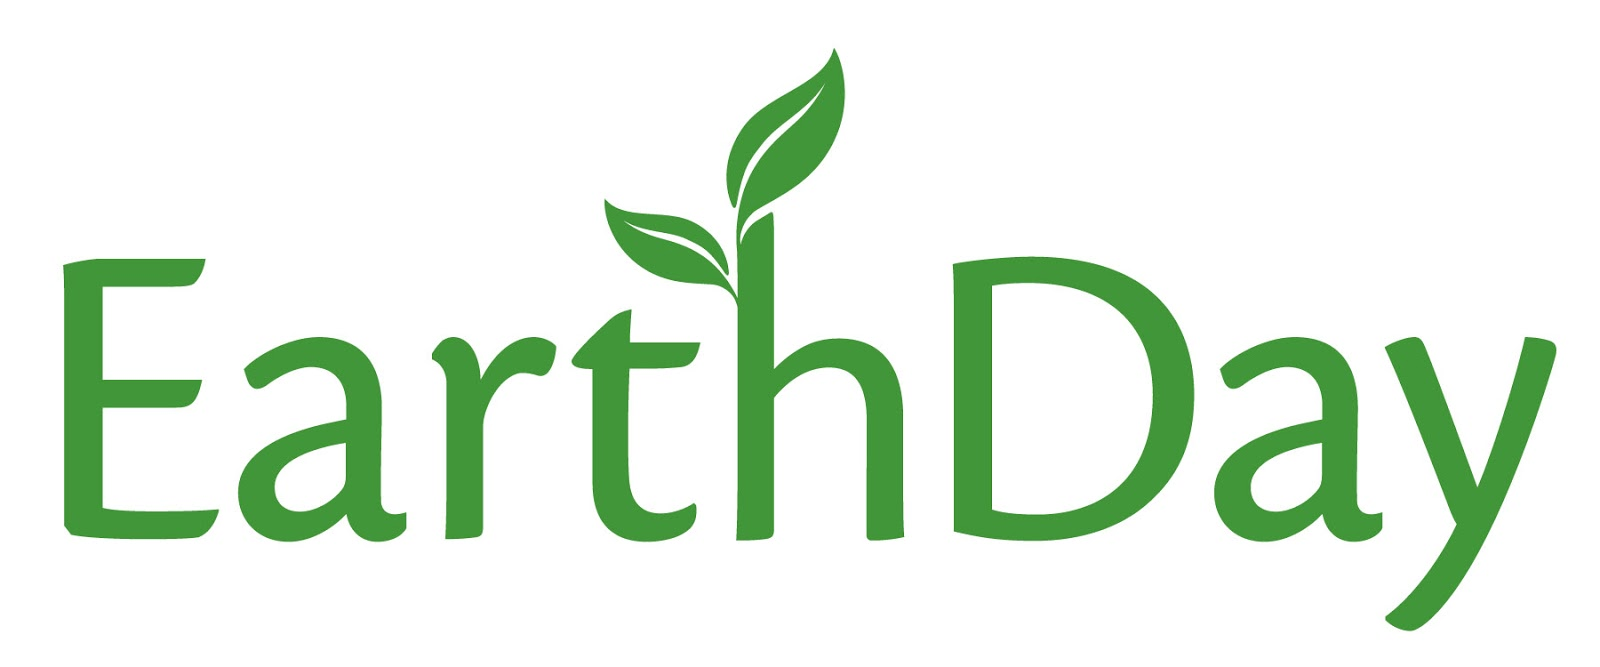 Earth Day HD Banner free download